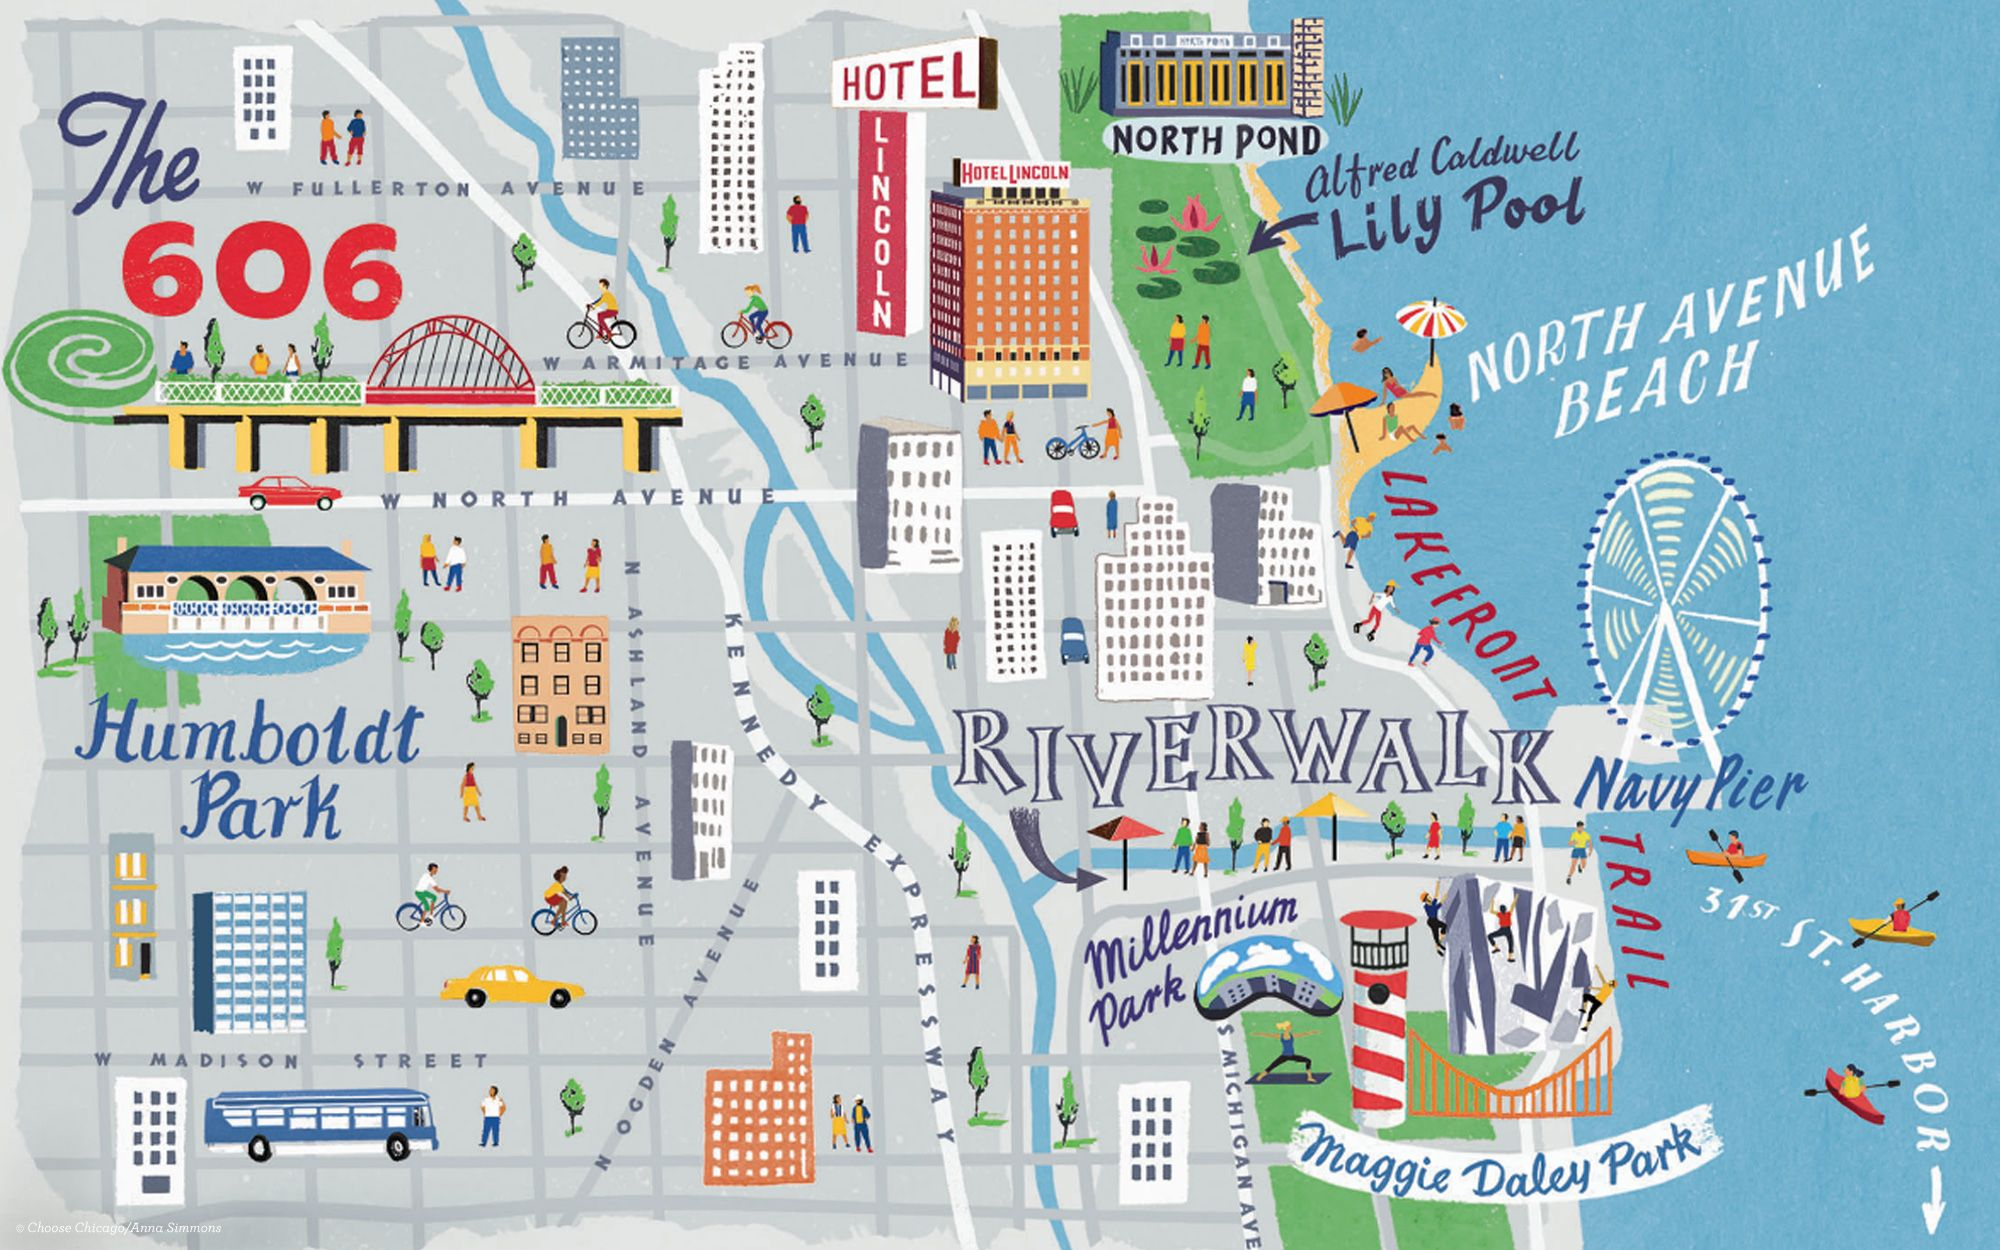 Riverwalk Chicago Map.View Full Size Map Urban Explorer 3 Day Chicago Itinerary Chicago